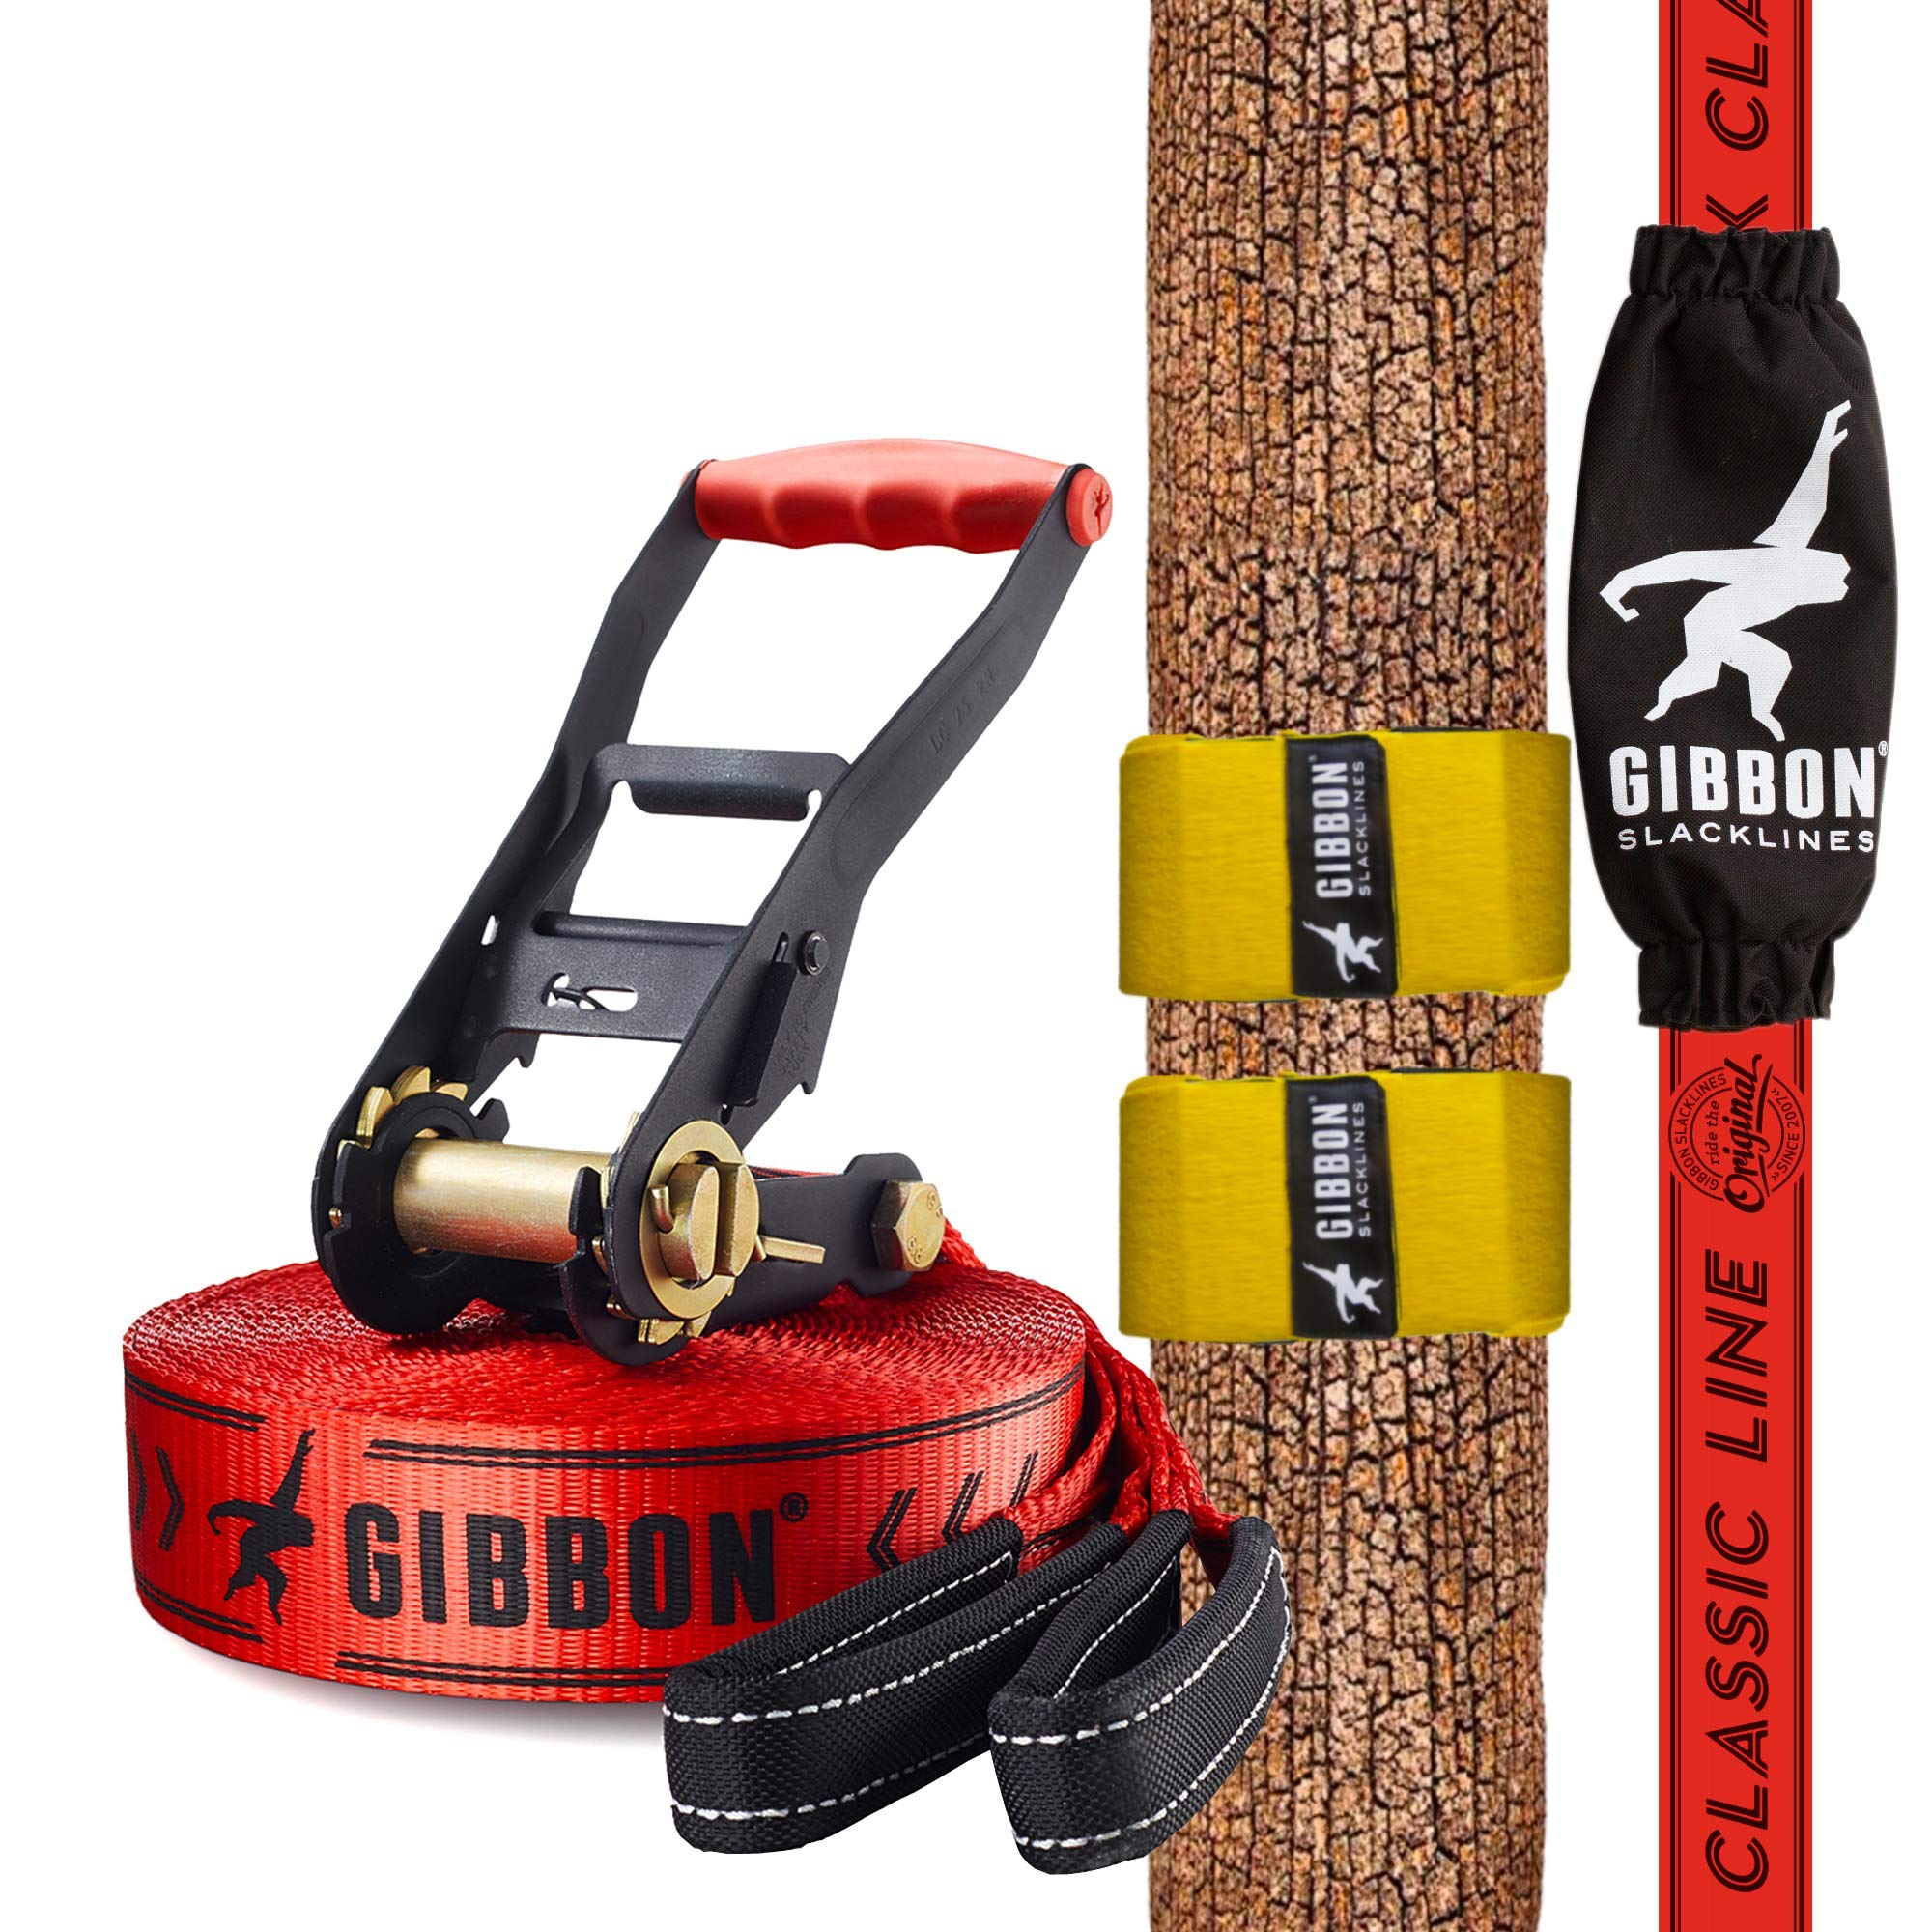 Gibbon Classic LINE with Tree PRO by Gibbon